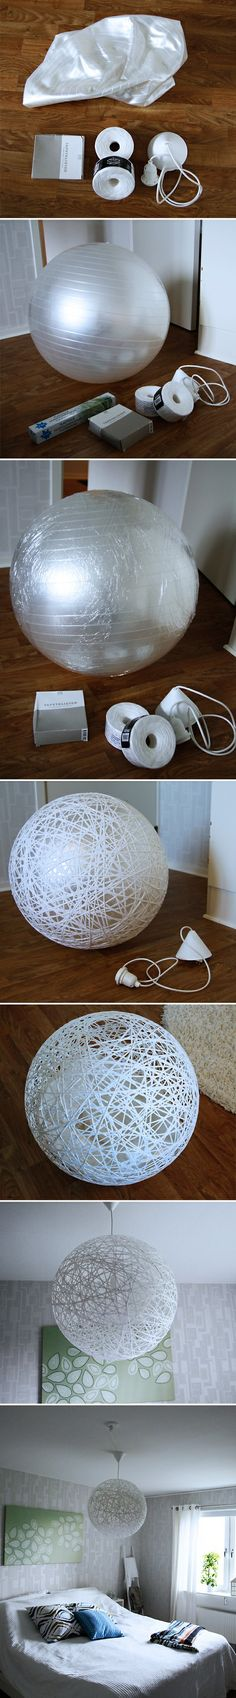 What to do -Blow up pilates ball & wrap in plastic to protect against wallpaper glue. -Mix the wallpaper glue according to package. -Dip paper cord in glue & wrap around ball however you like (leave a hole in top for lamp bulb). -Let dry for 24 hours. -Deflate pilates ball & pull out through hole.